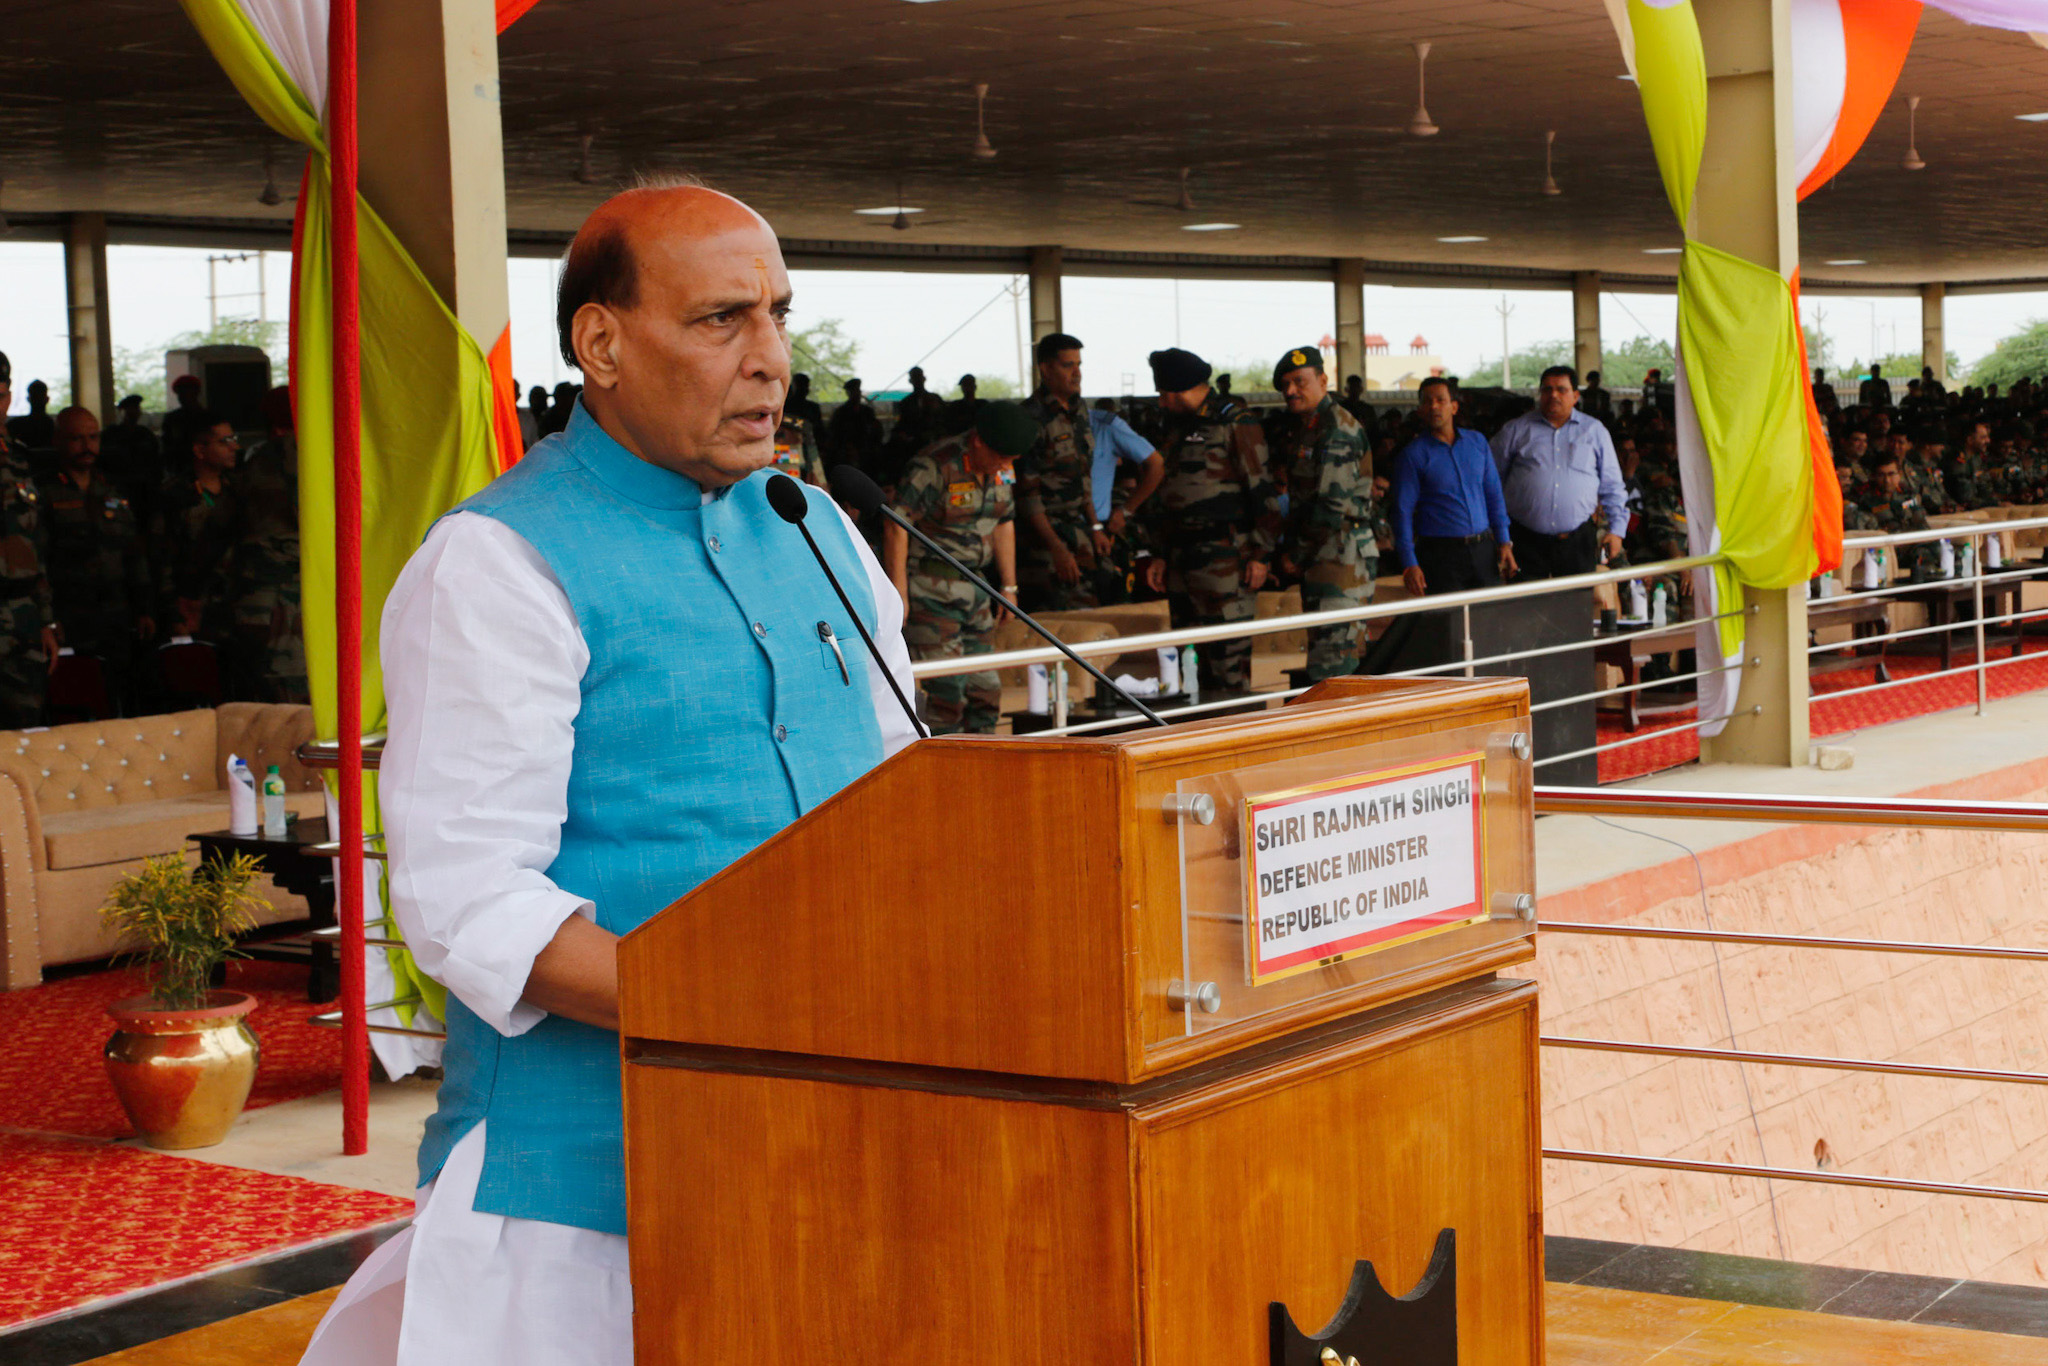 The Union Minister for Defence, Shri Rajnath Singh addressing the contingents of eight participating countries at 5th International Army Scout Masters Competition 2019, at Jaisalmer, in Rajasthan on August 16, 2019.